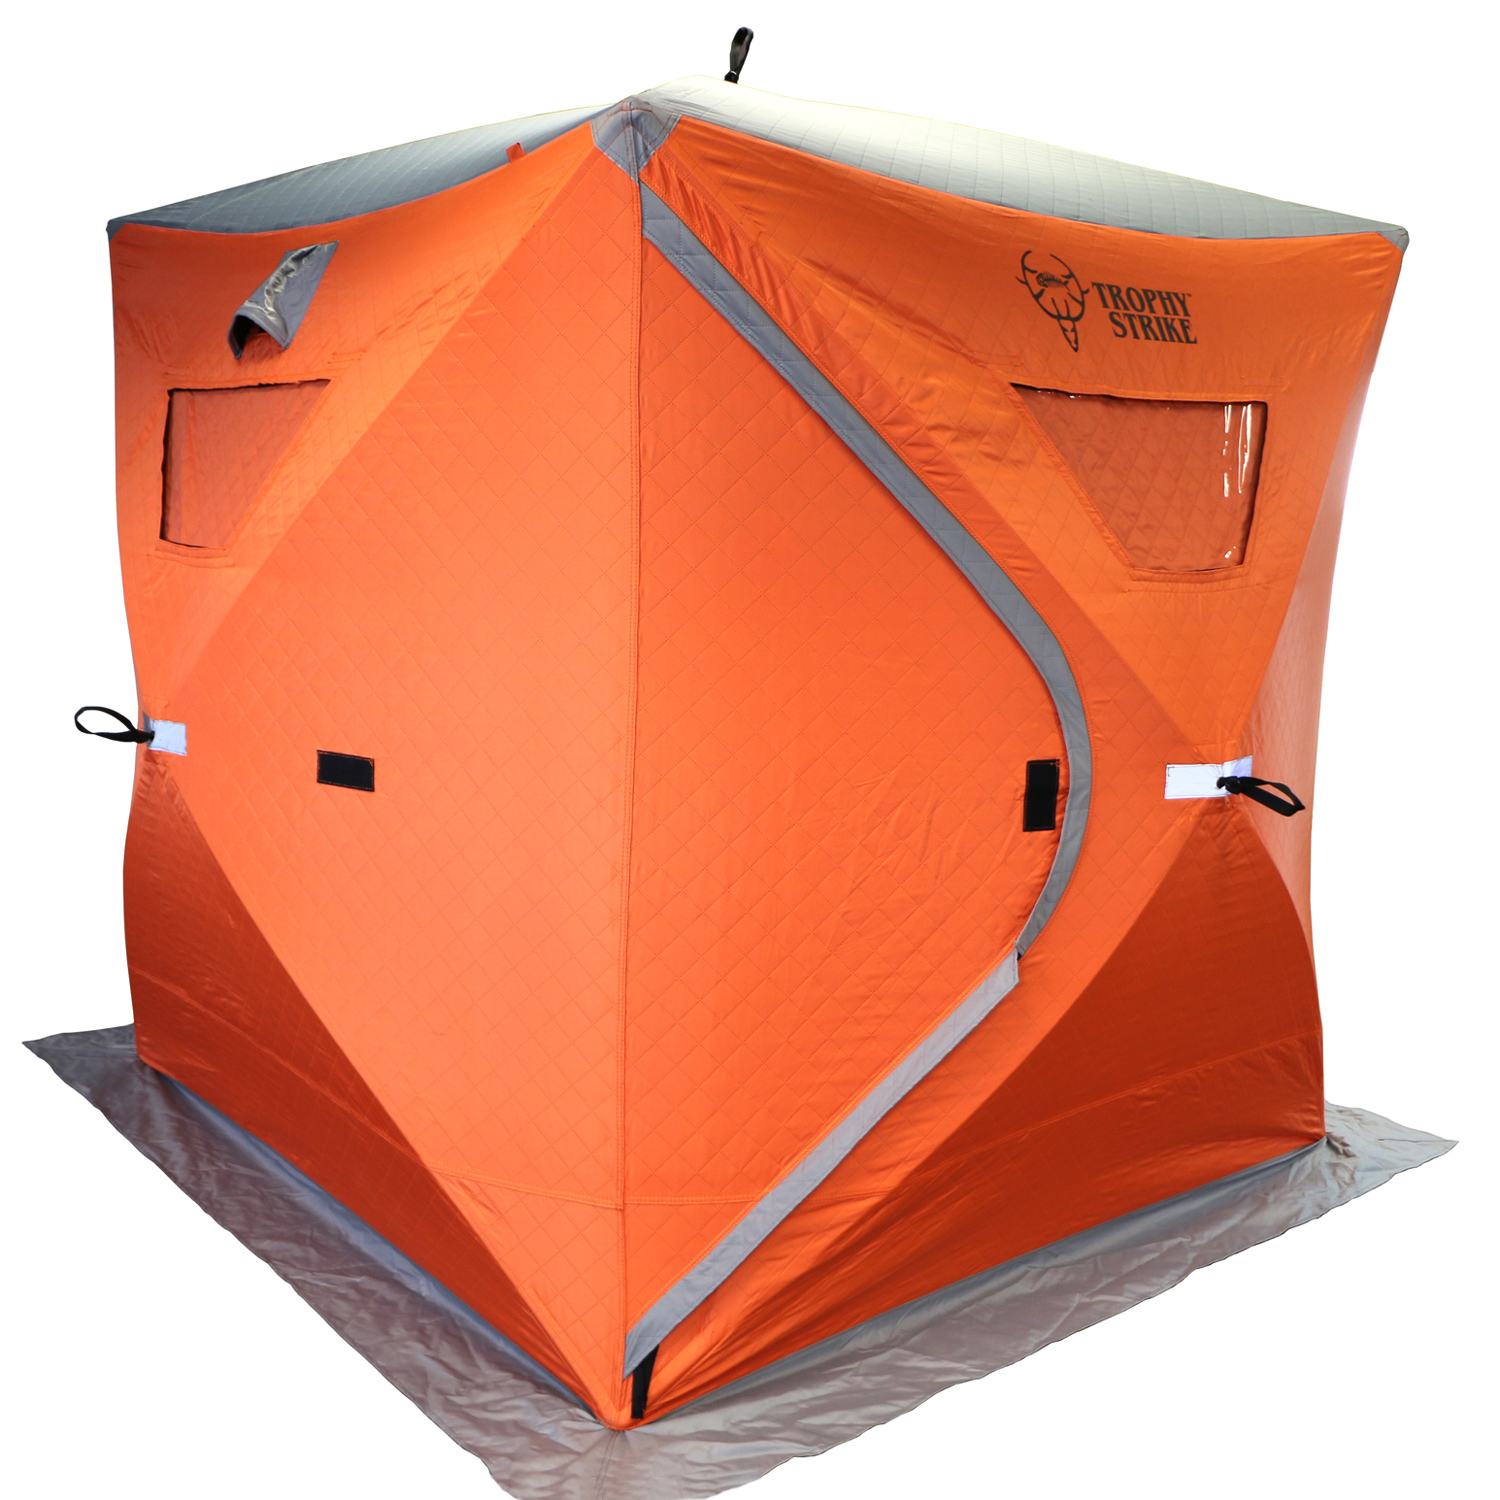 Homeu003eIce ...  sc 1 st  Trophy Strike & Three Person Thermal Ice Shelter | Trophy Strike